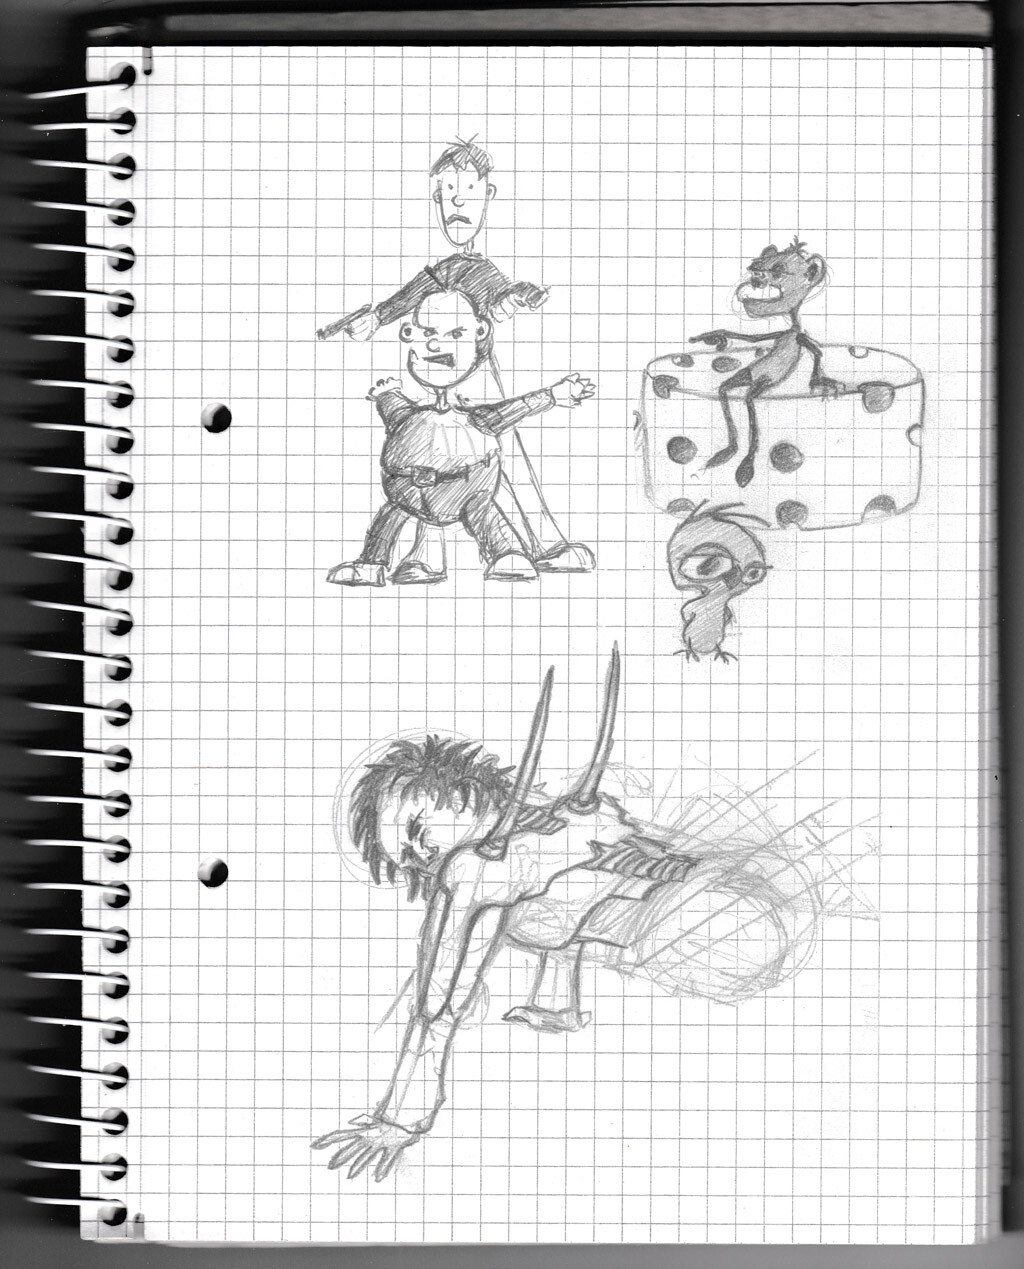 character, sketch, pencil, monster, creature, lads,